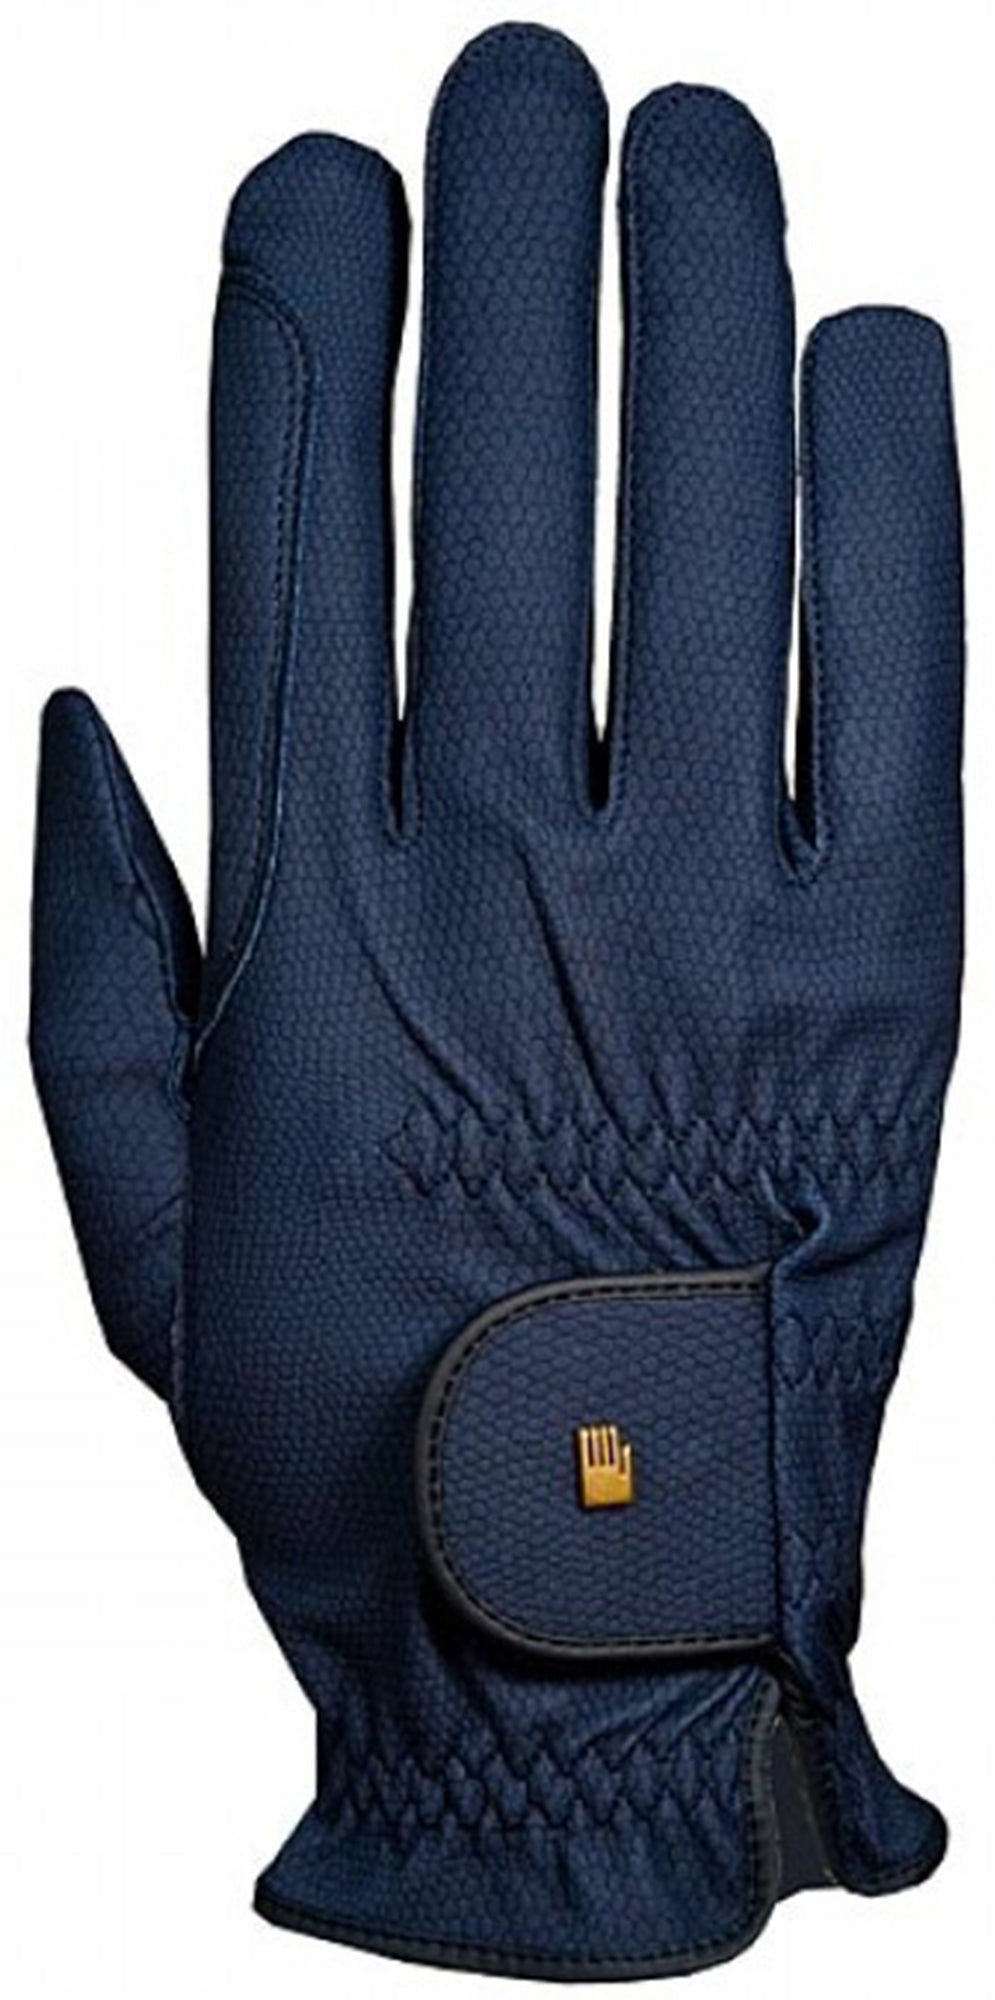 Roeckl Chester Roeck-Grip Winter Riding Gloves - Navy